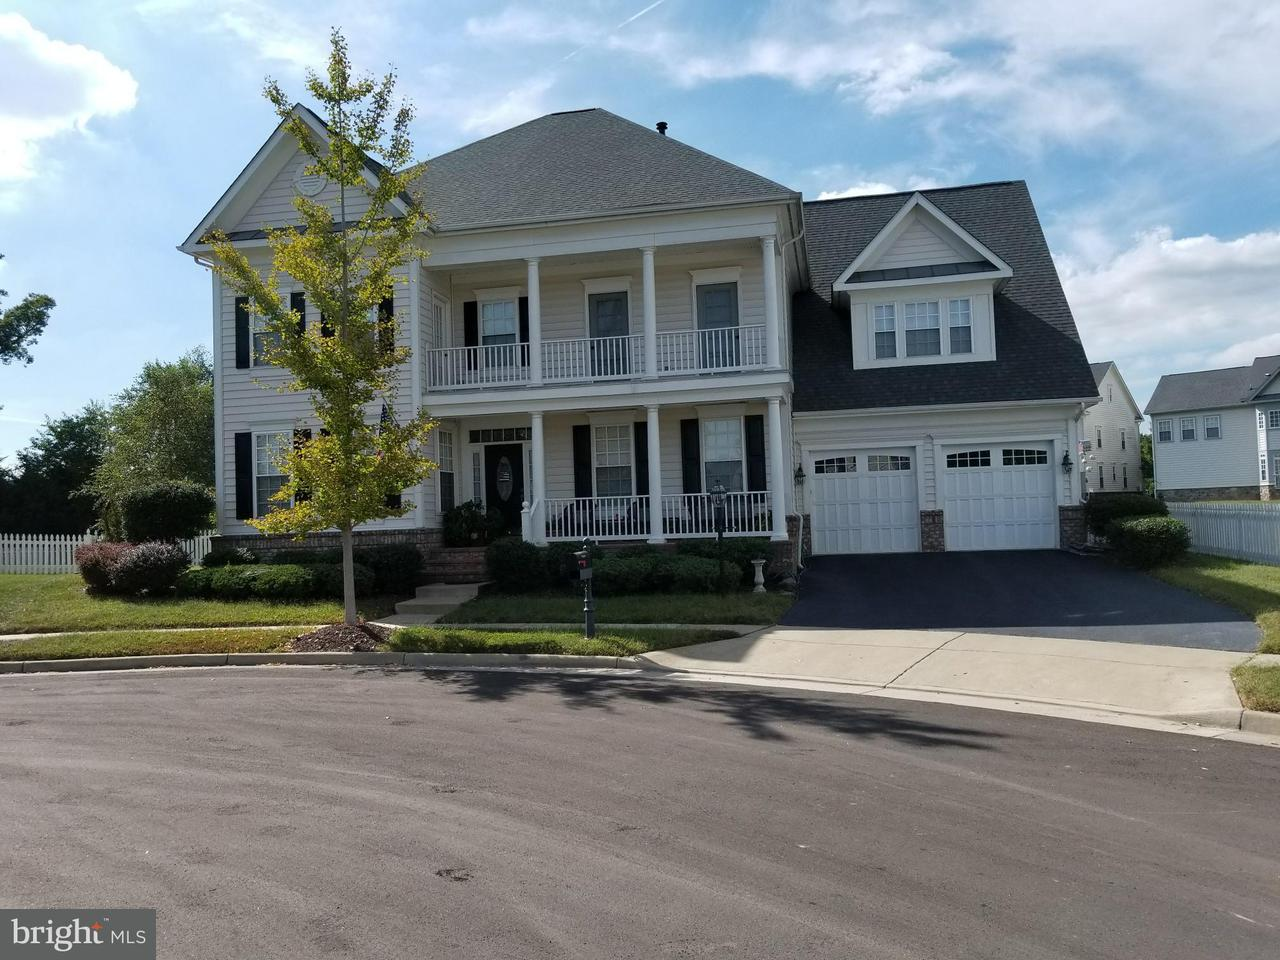 Single Family Home for Sale at 10938 A P HILL Court 10938 A P HILL Court Bristow, Virginia 20136 United States